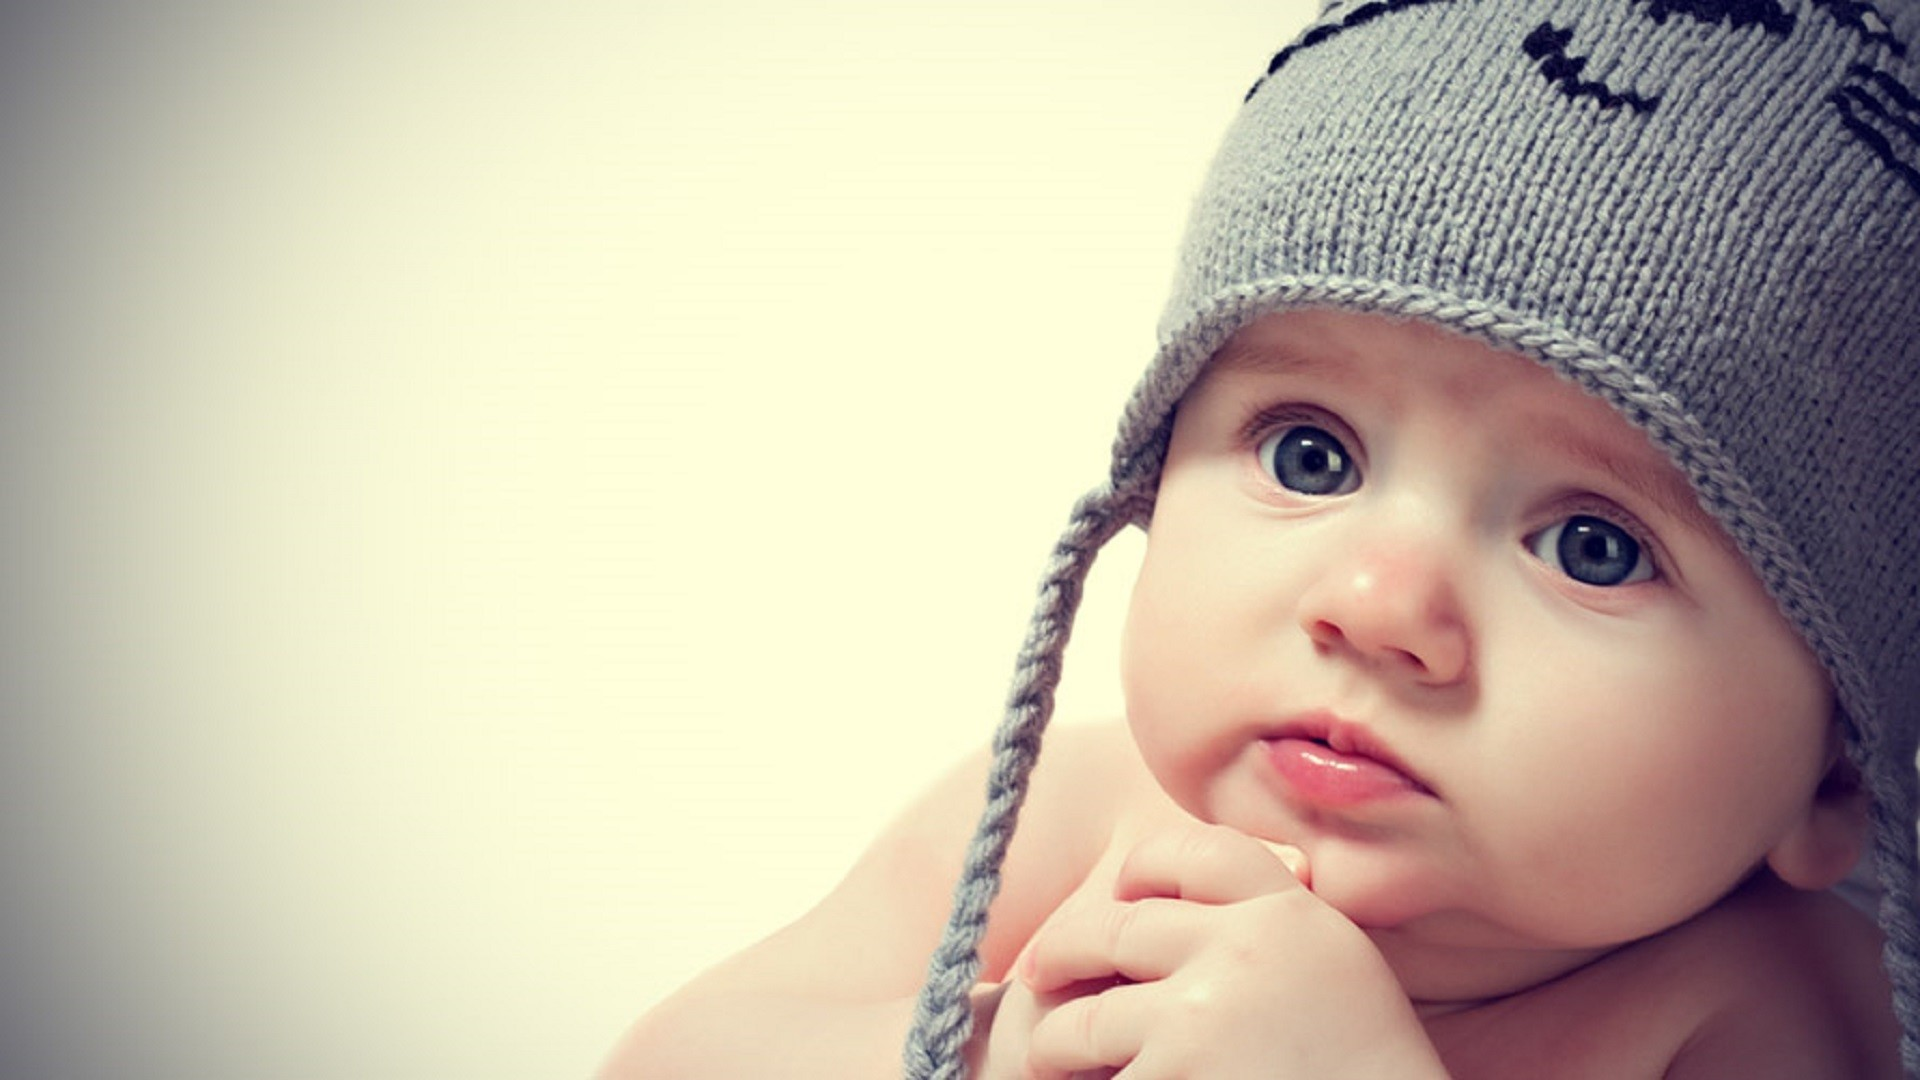 cute baby boy pictures wallpapers (63+ images)